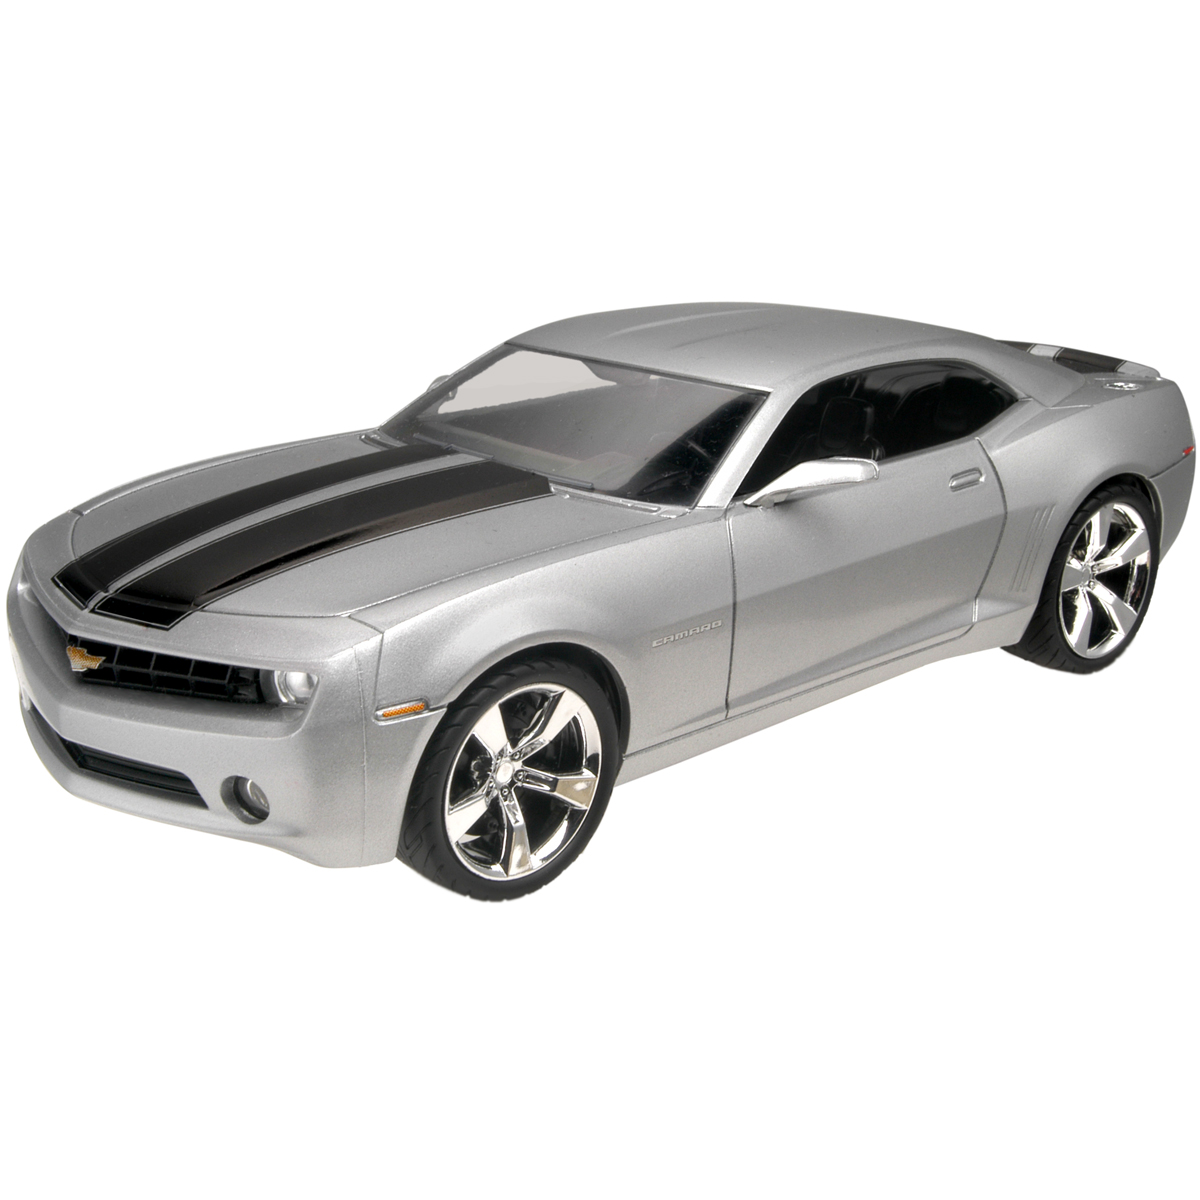 Plastic Model Kit-Camaro Concept Car 1:25